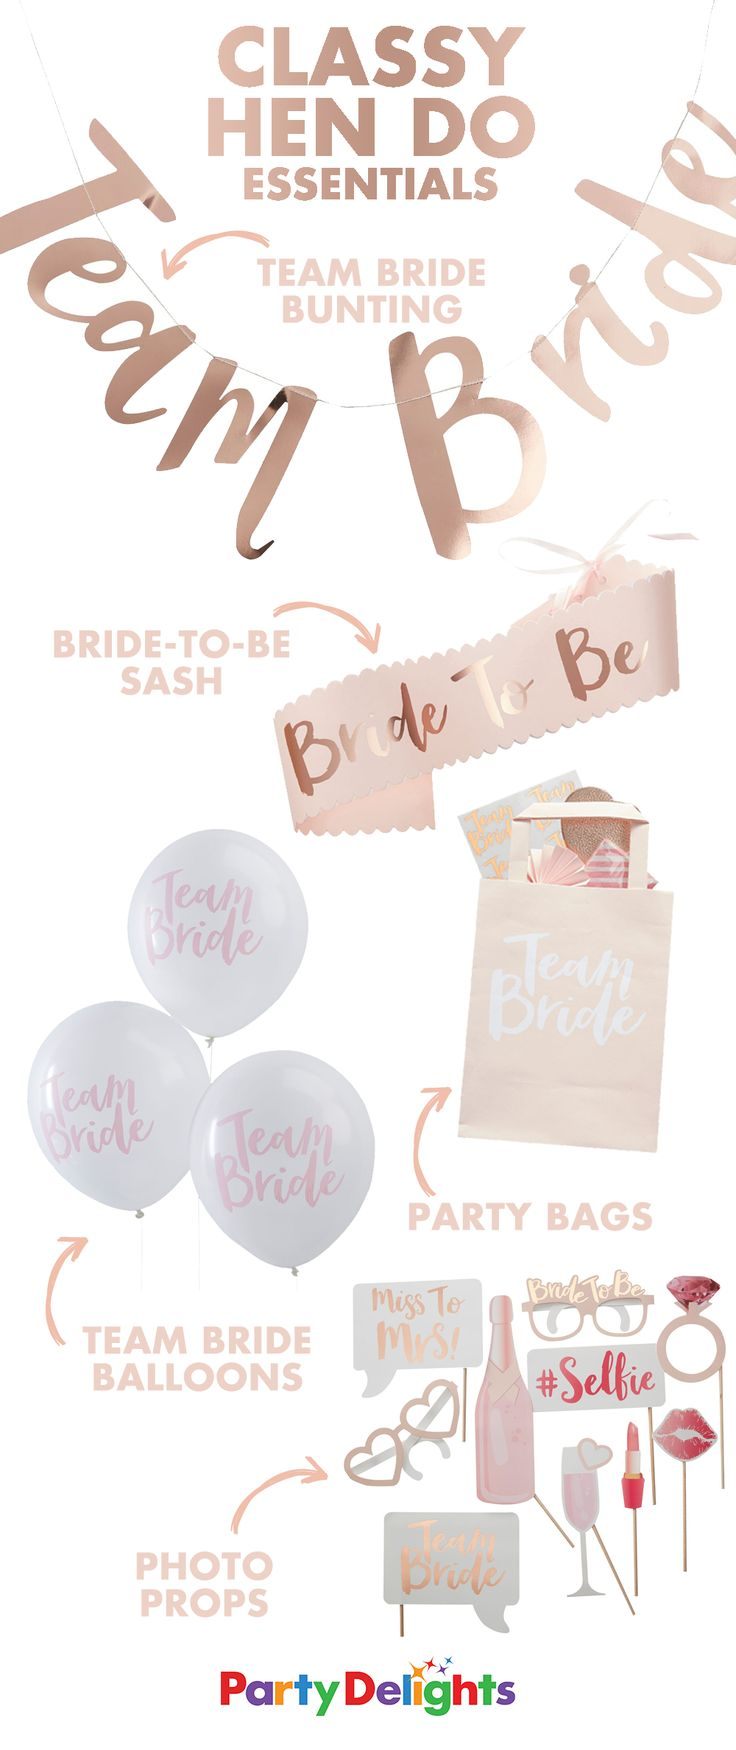 Big happy birthday badges party products party delights - Big Happy Birthday Badges Party Products Party Delights Celebrate The Bride To Be S Last Download